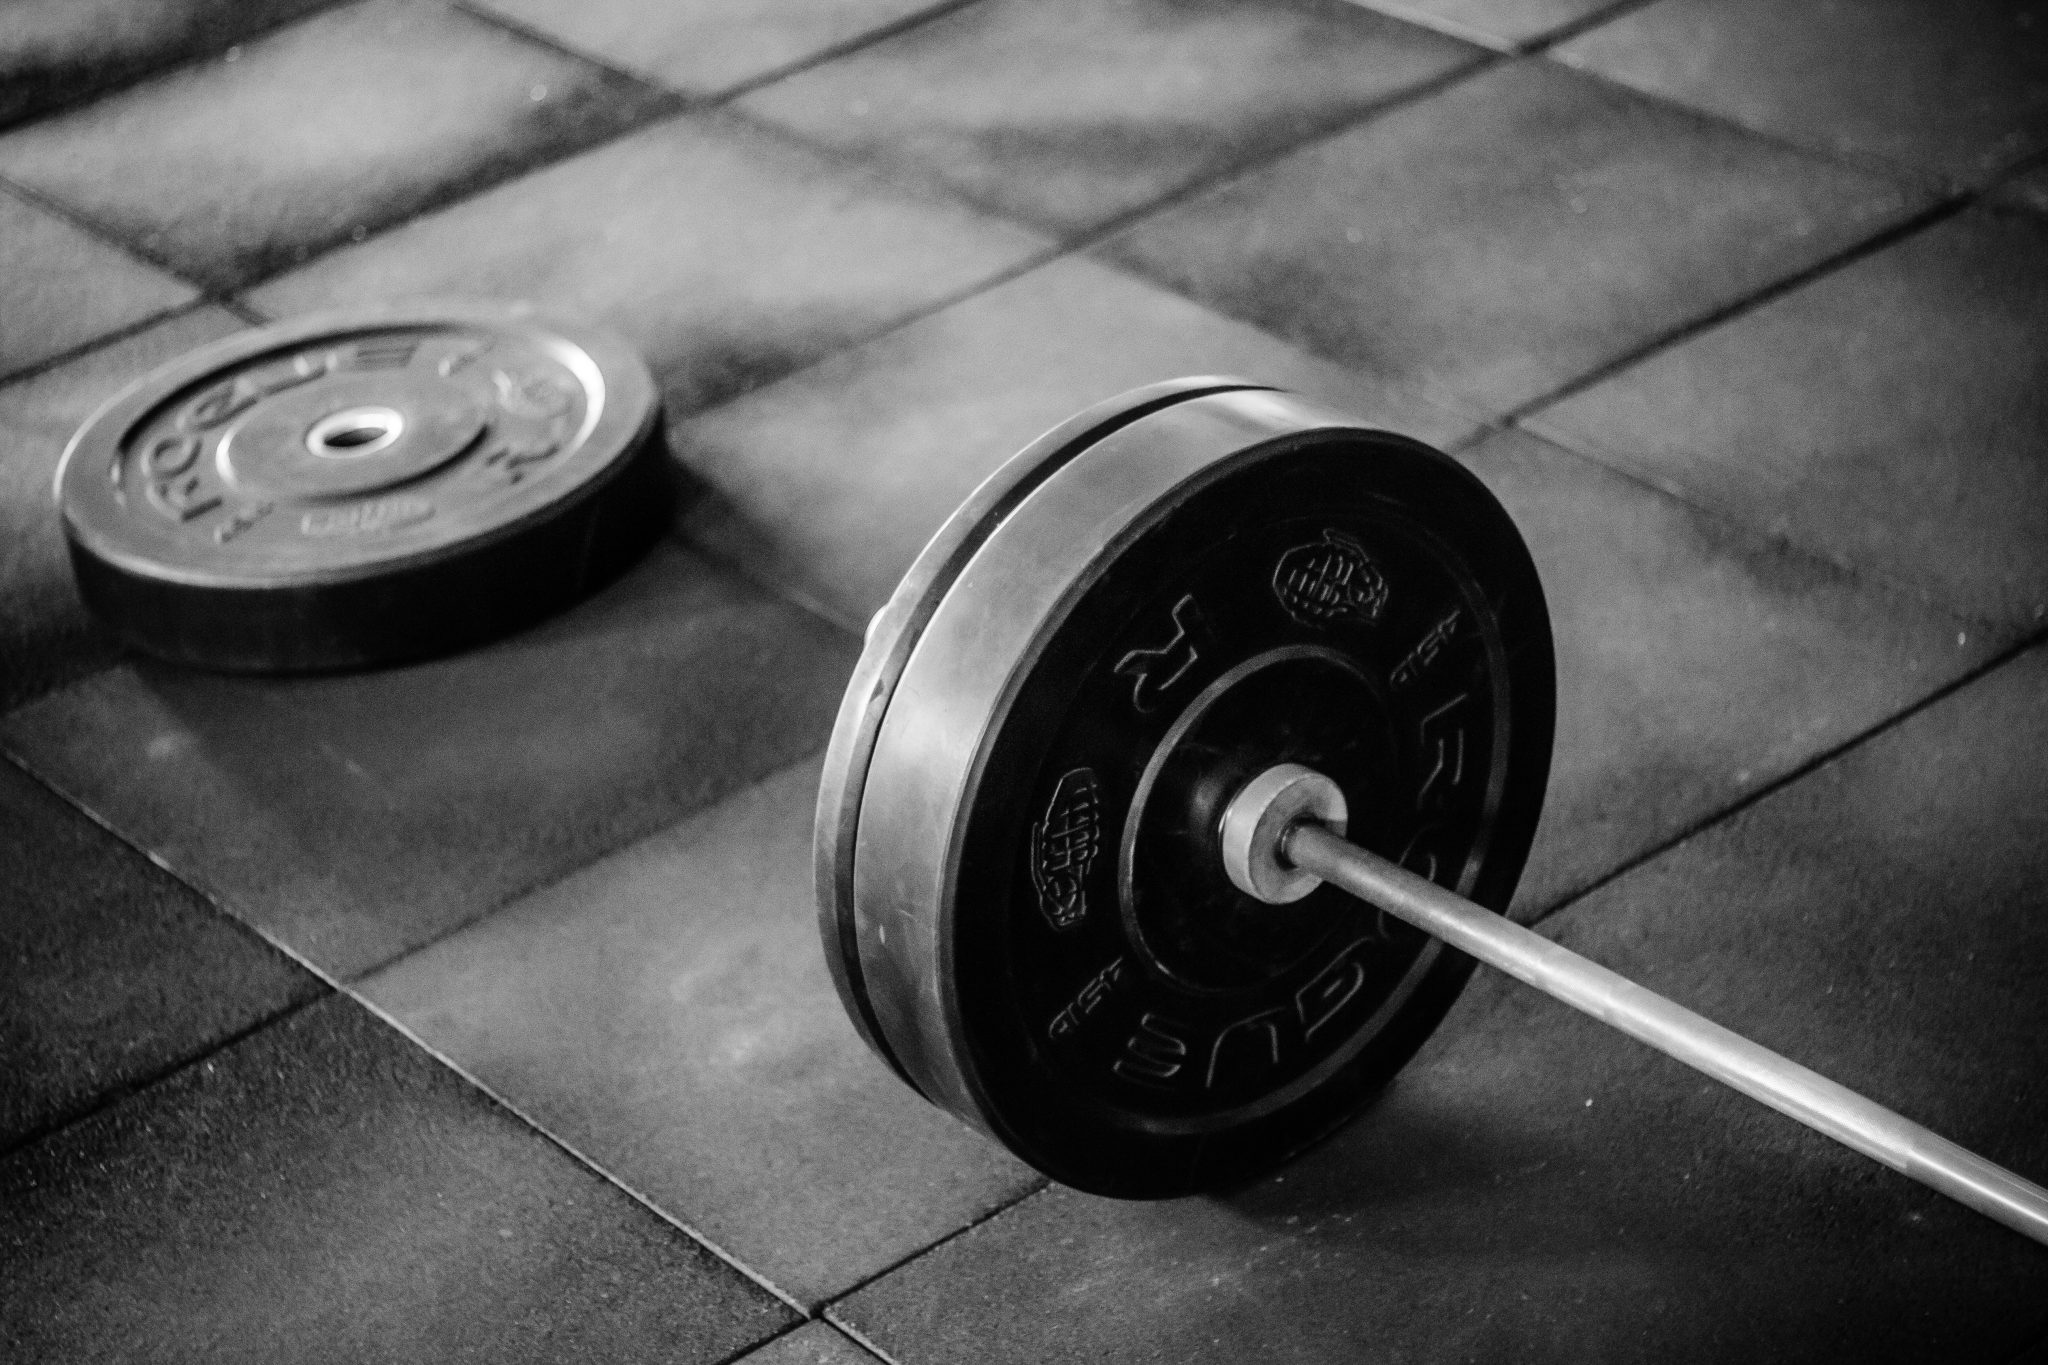 Get foam flooring for your home gym to protect your actual home flooring